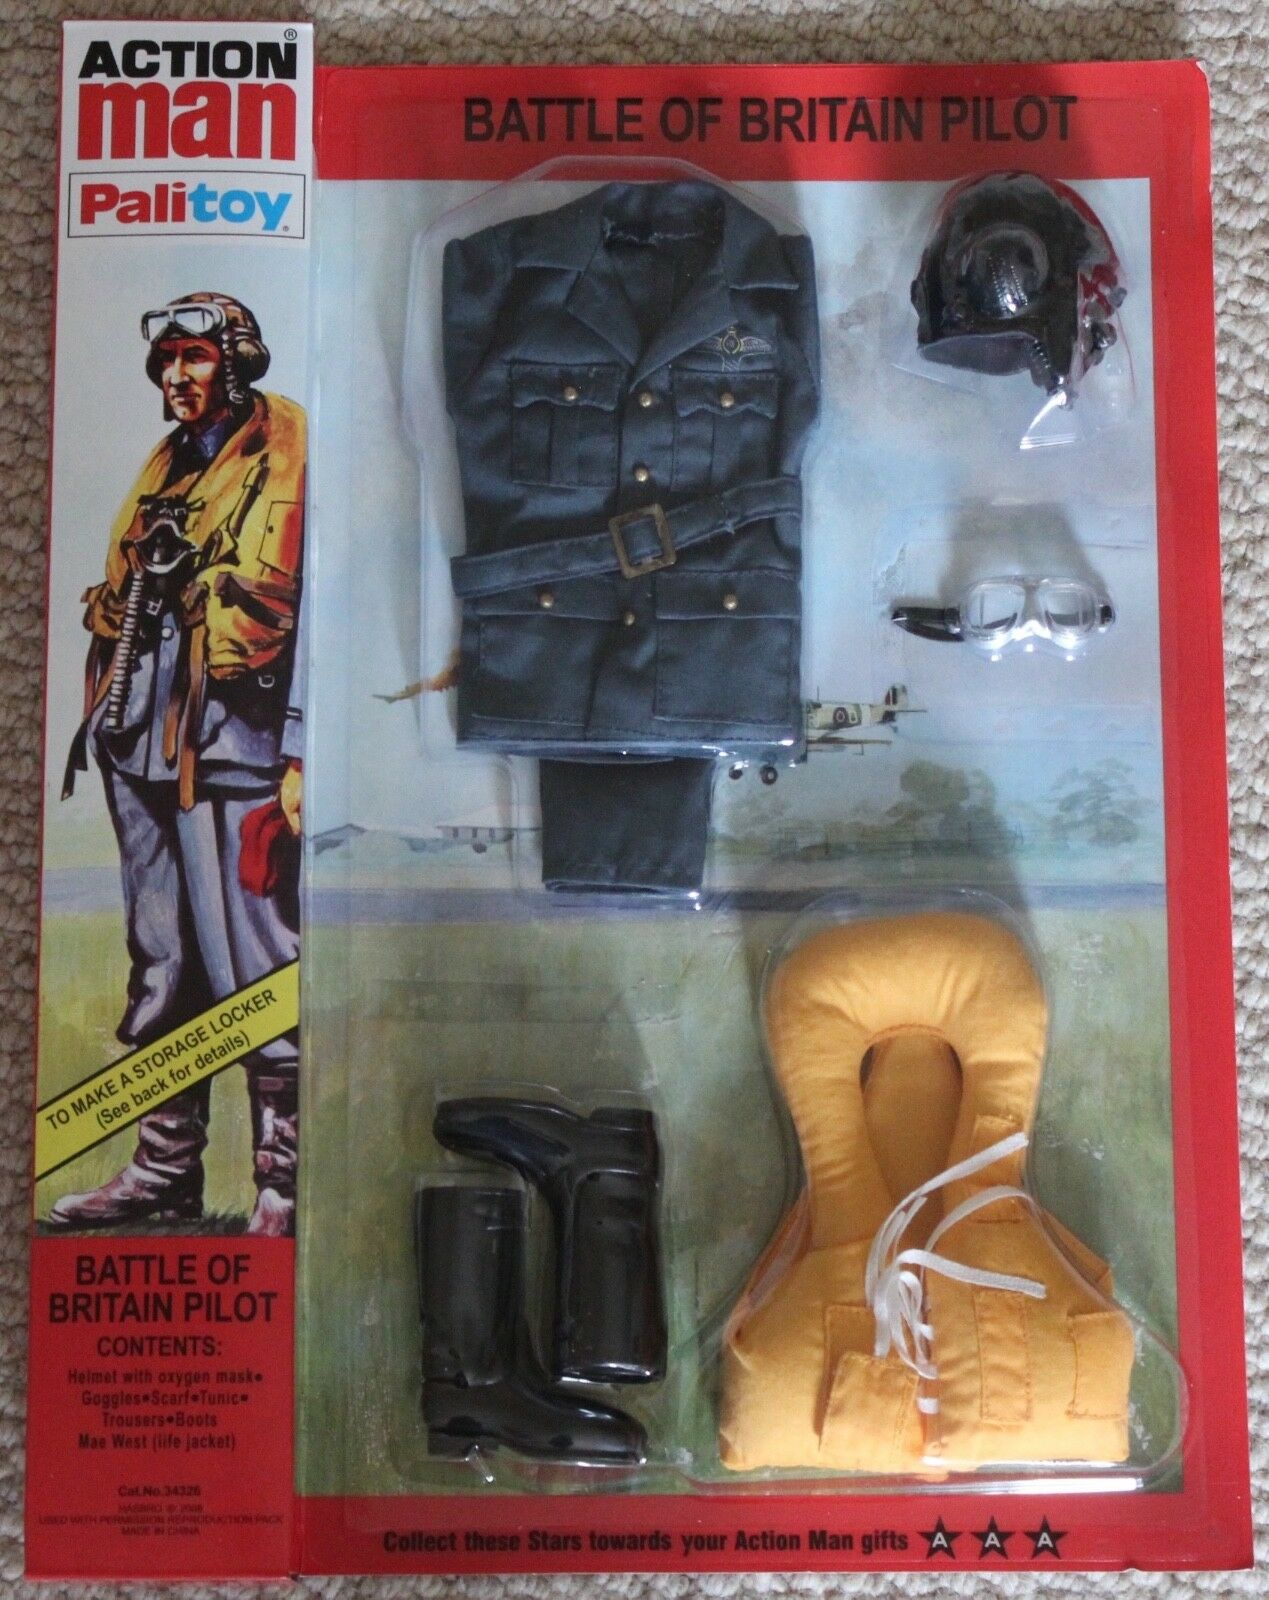 Vintage action man 40th anniversary battle of britain pilot card boxed